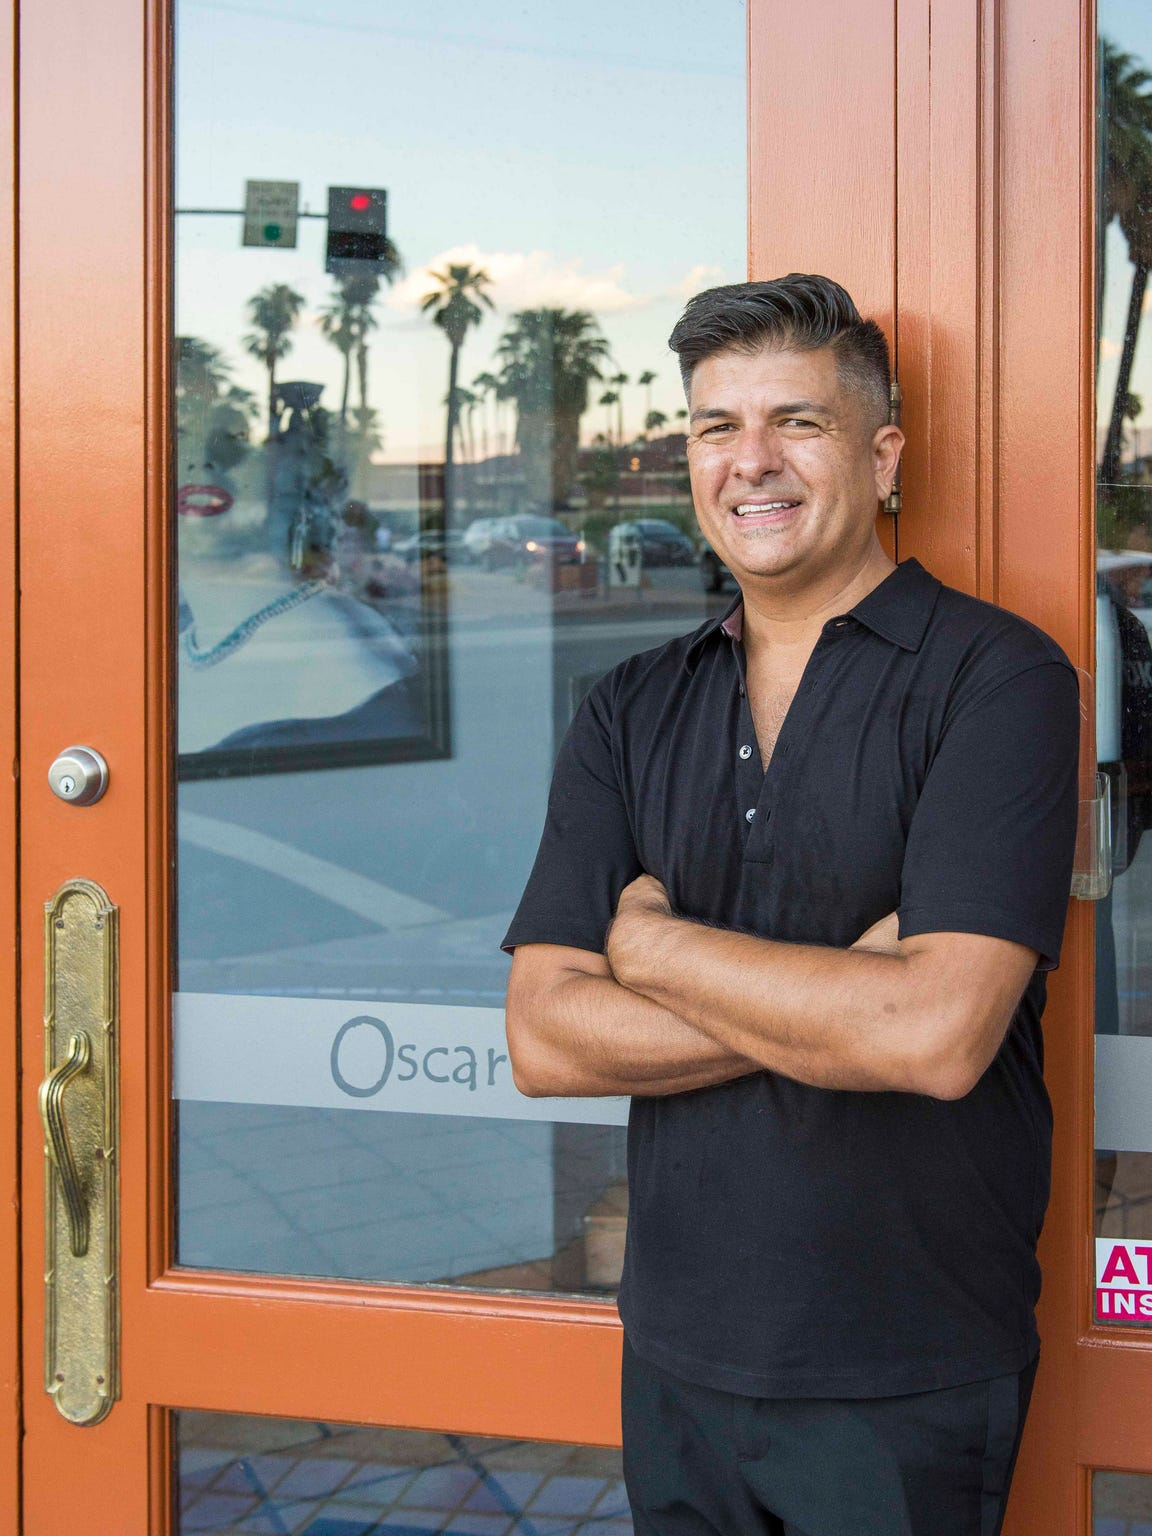 Daniel Gore, the current operator of Oscar's, is one of two businessmen who claim rightful ownership of the beloved restaurant.